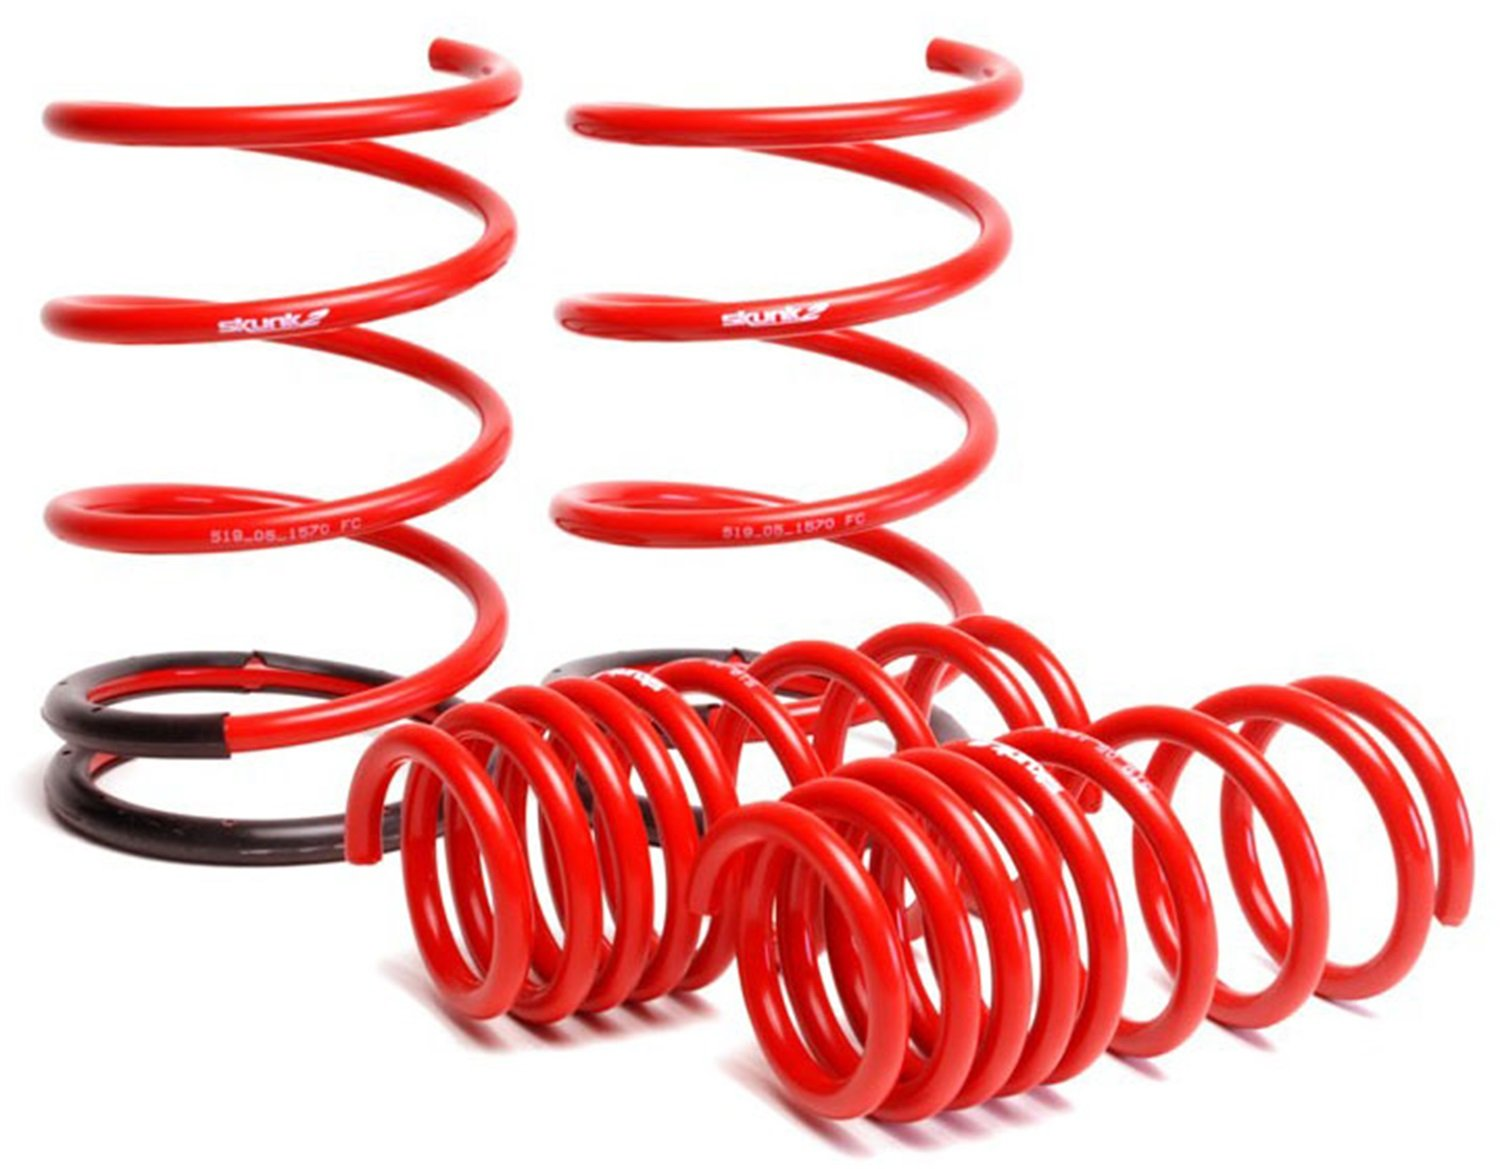 Skunk2 519-05-1570 Lowering Spring for Honda Civic